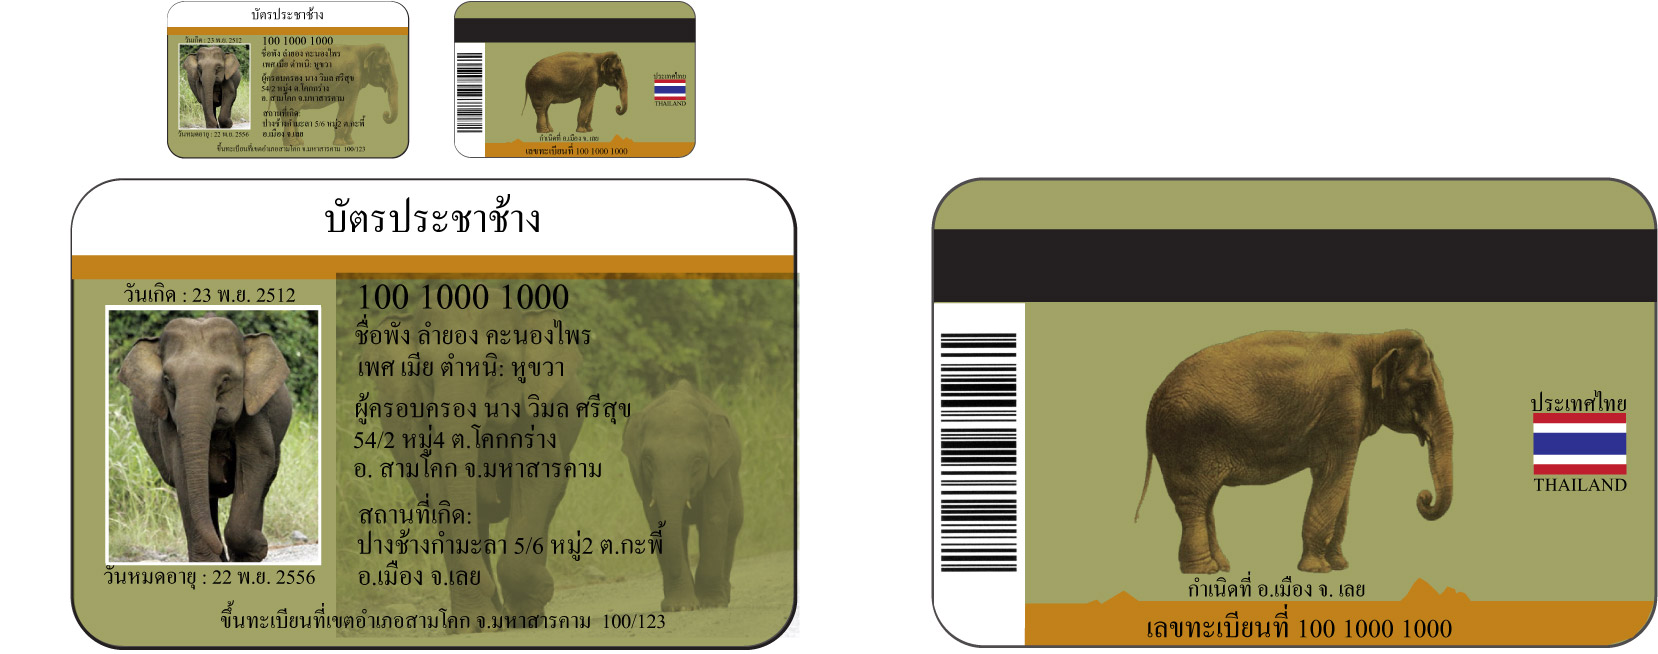 Elephant ID smart-cards as introduced and supported by WFFT